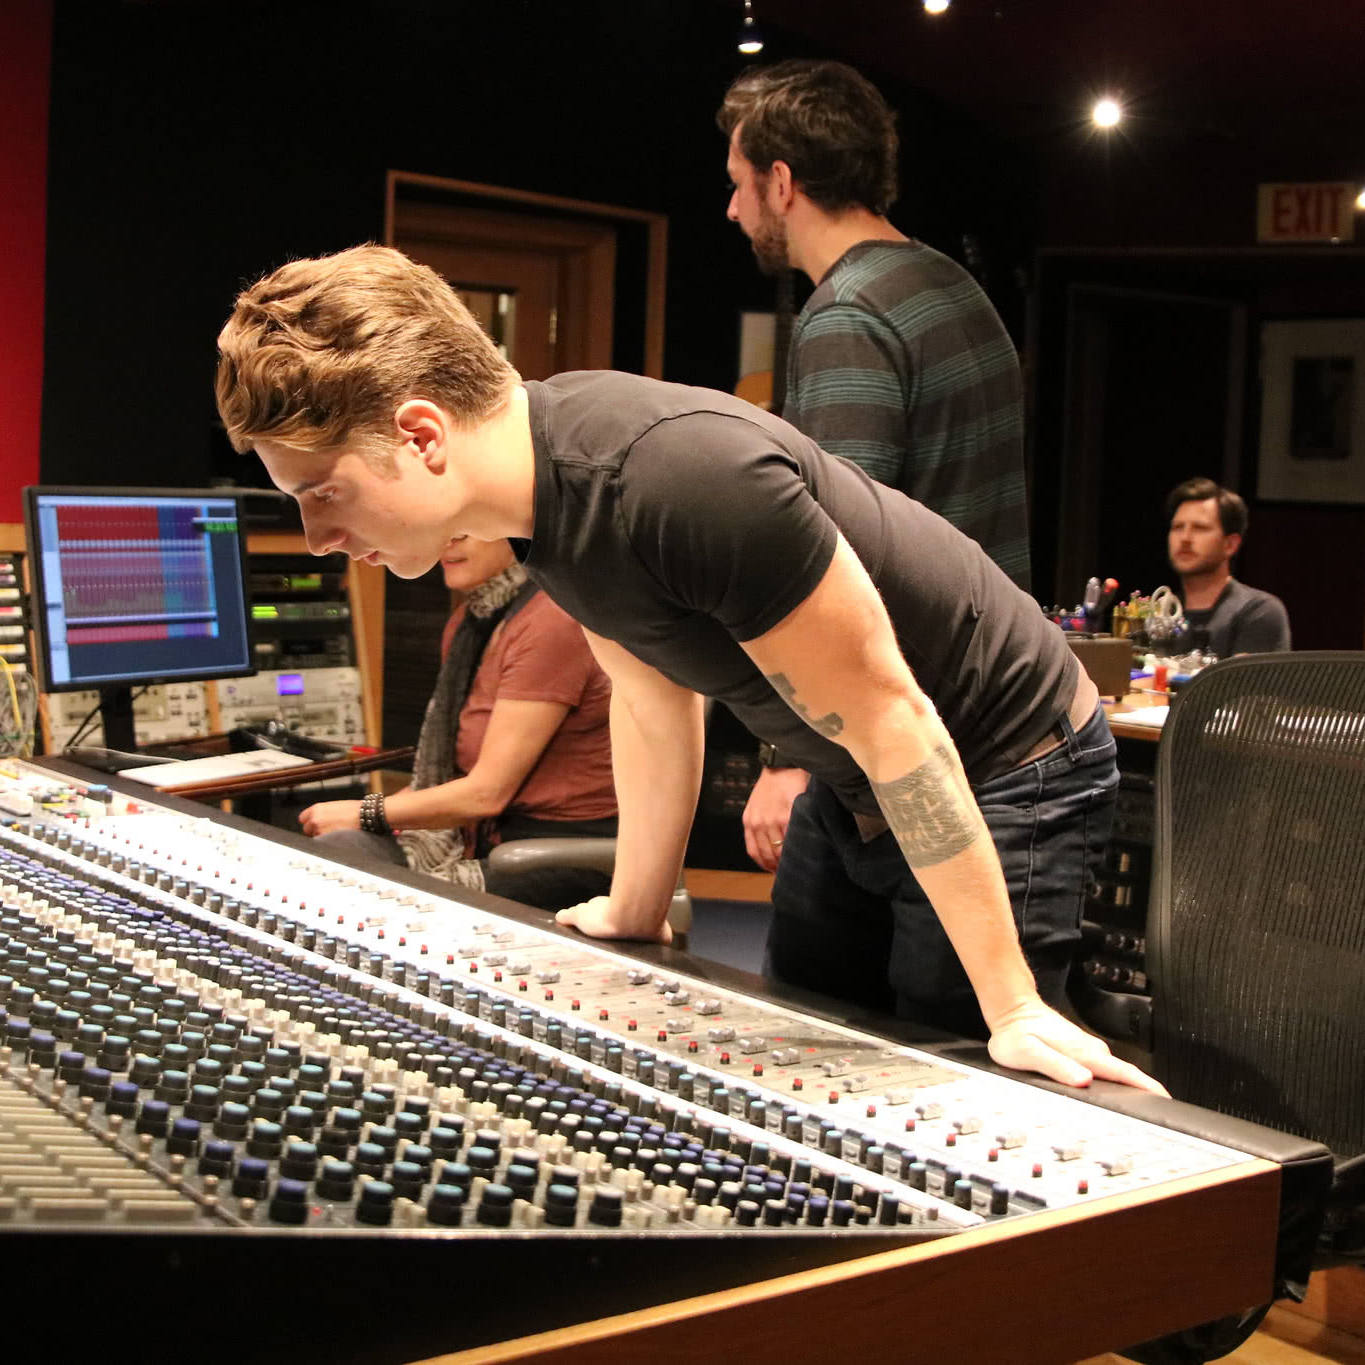 Student working at the Neve 8078 console in Studio A